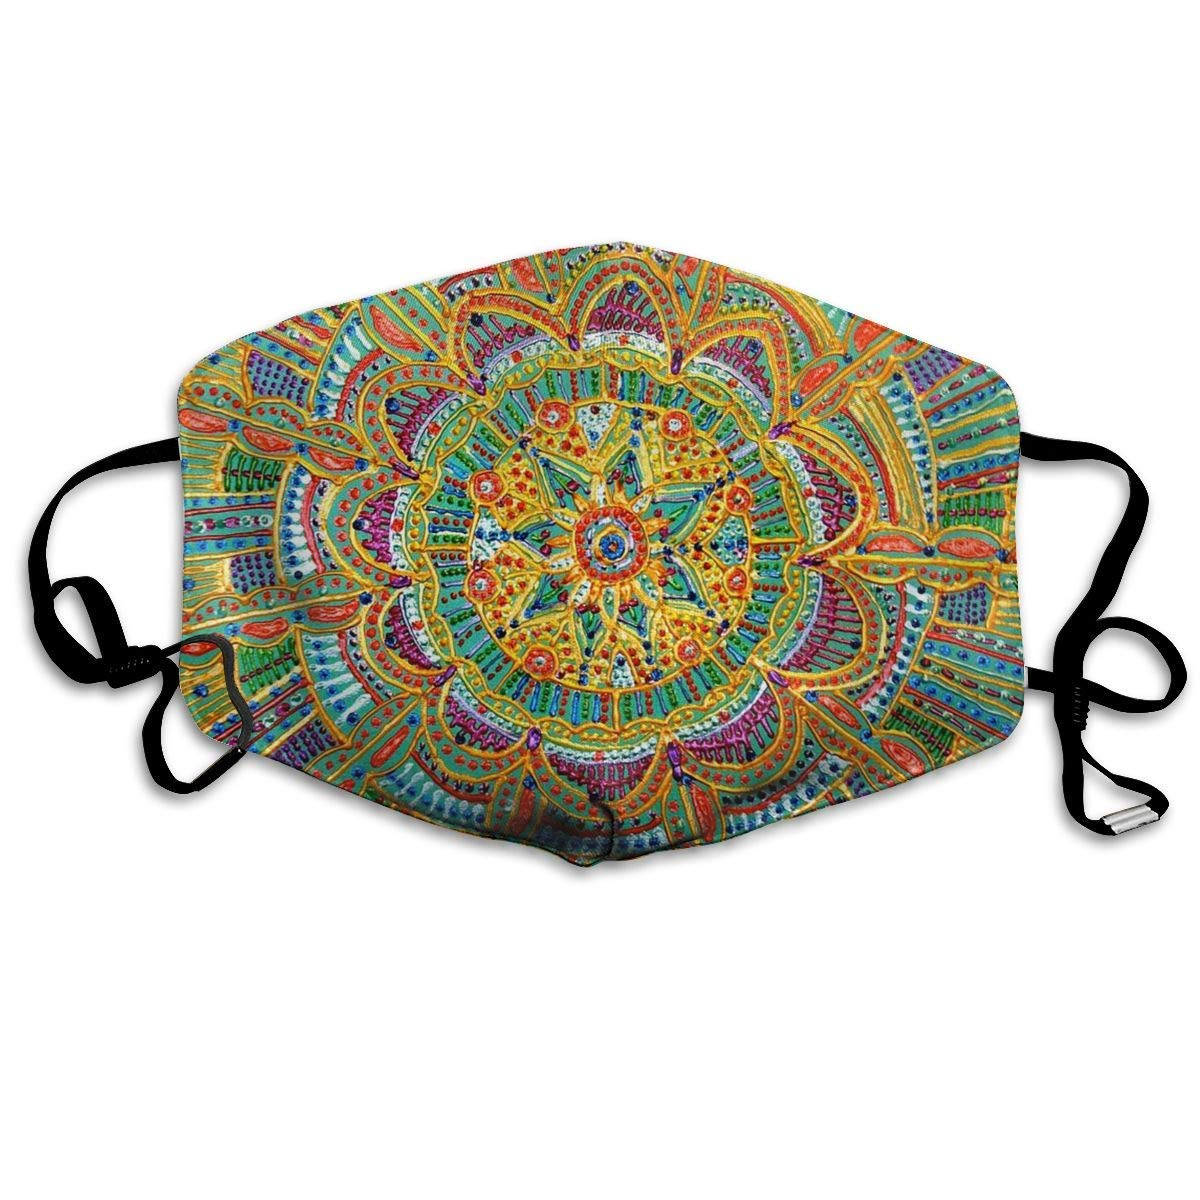 Daawqee Mascarillas, Kaleidoscope Painting Face Masks Breathable Dust Filter Masks Mouth Cover Masks Elastic Ear Loop